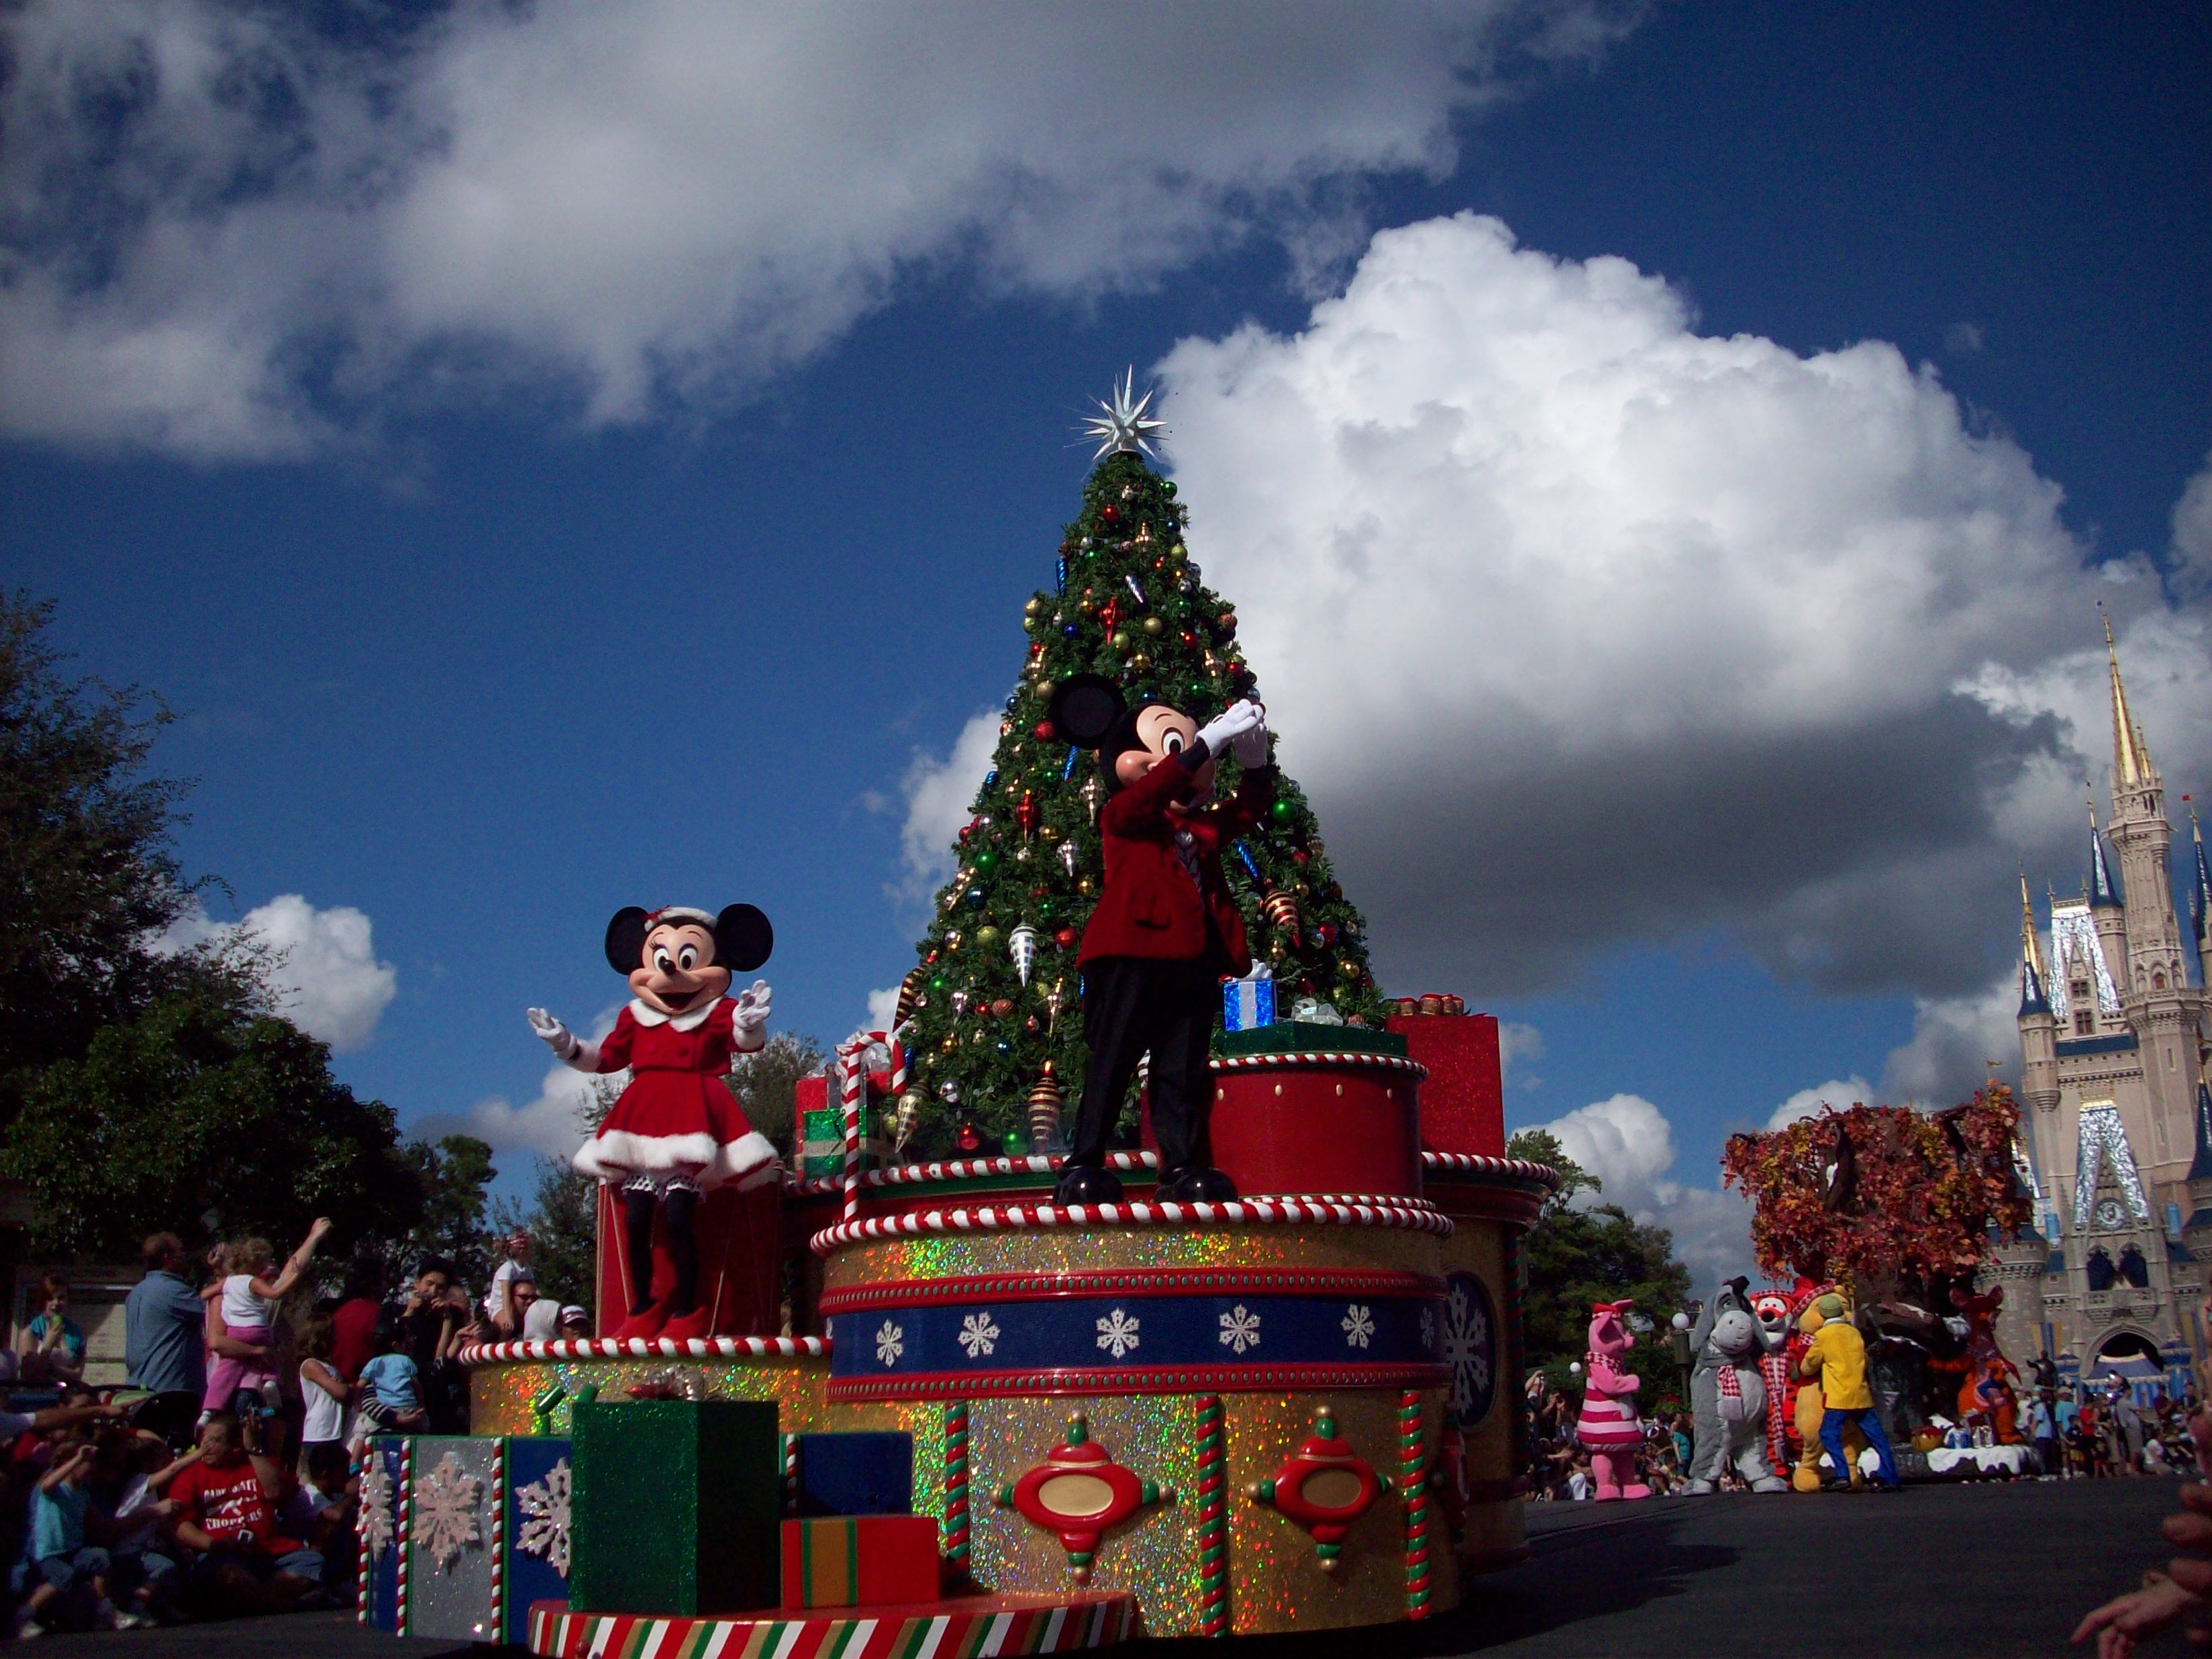 10 Ways to Make the Most of Your Disney World Christmas Vacation